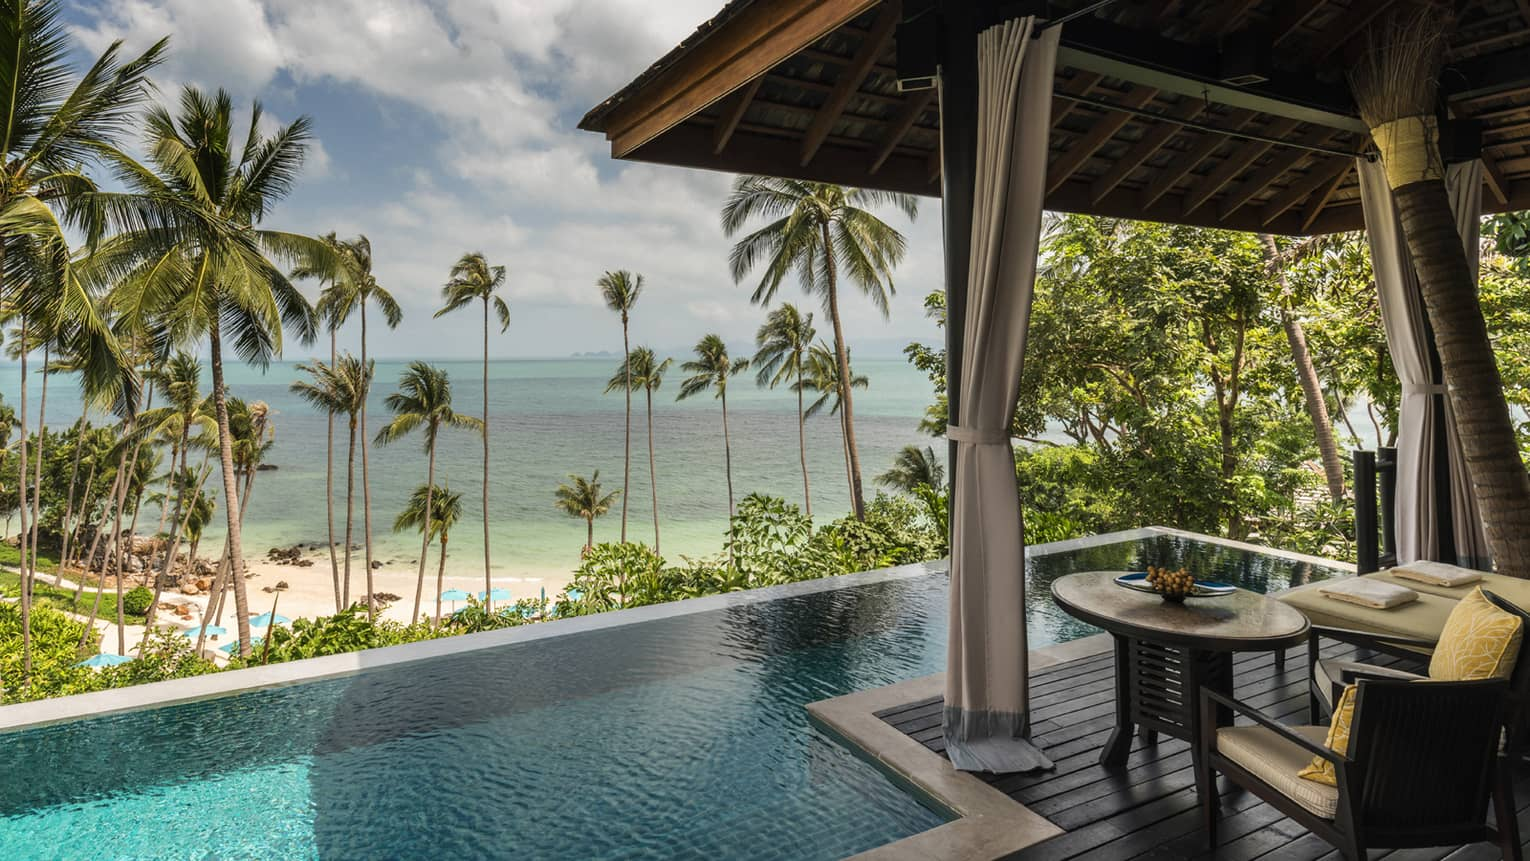 Beachfront Pool Villa small round table on patio by plunge swimming pool, beach and ocean view